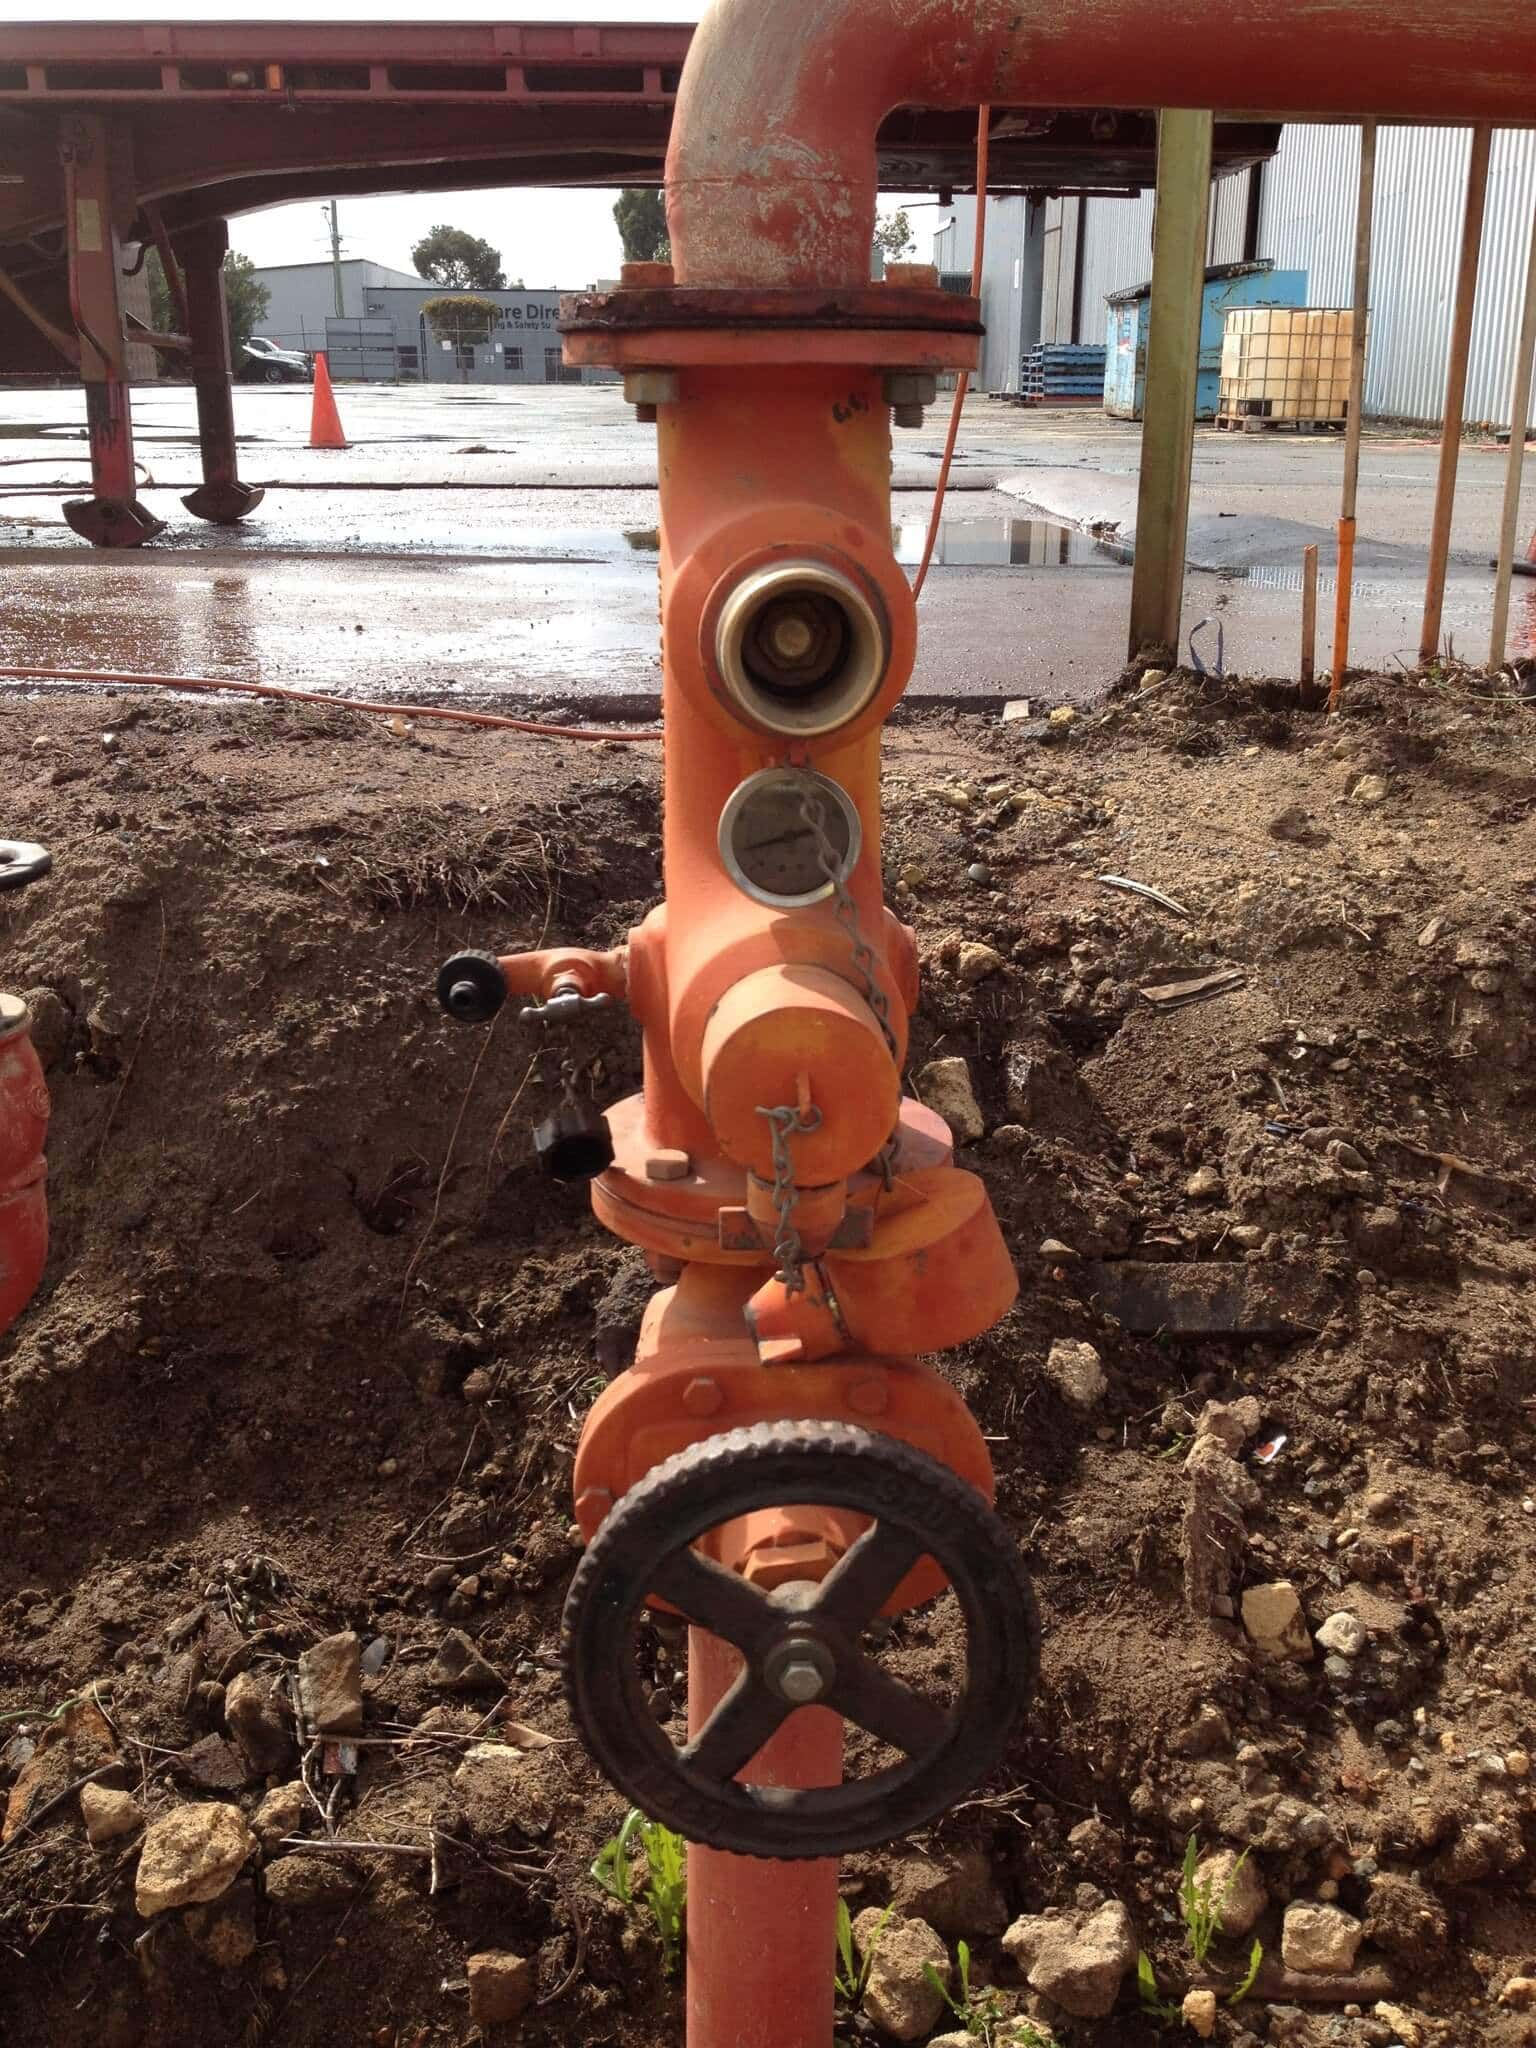 Everyday Plumbers Fire Hydrants Repair and Monitoring - Front Controls 2152